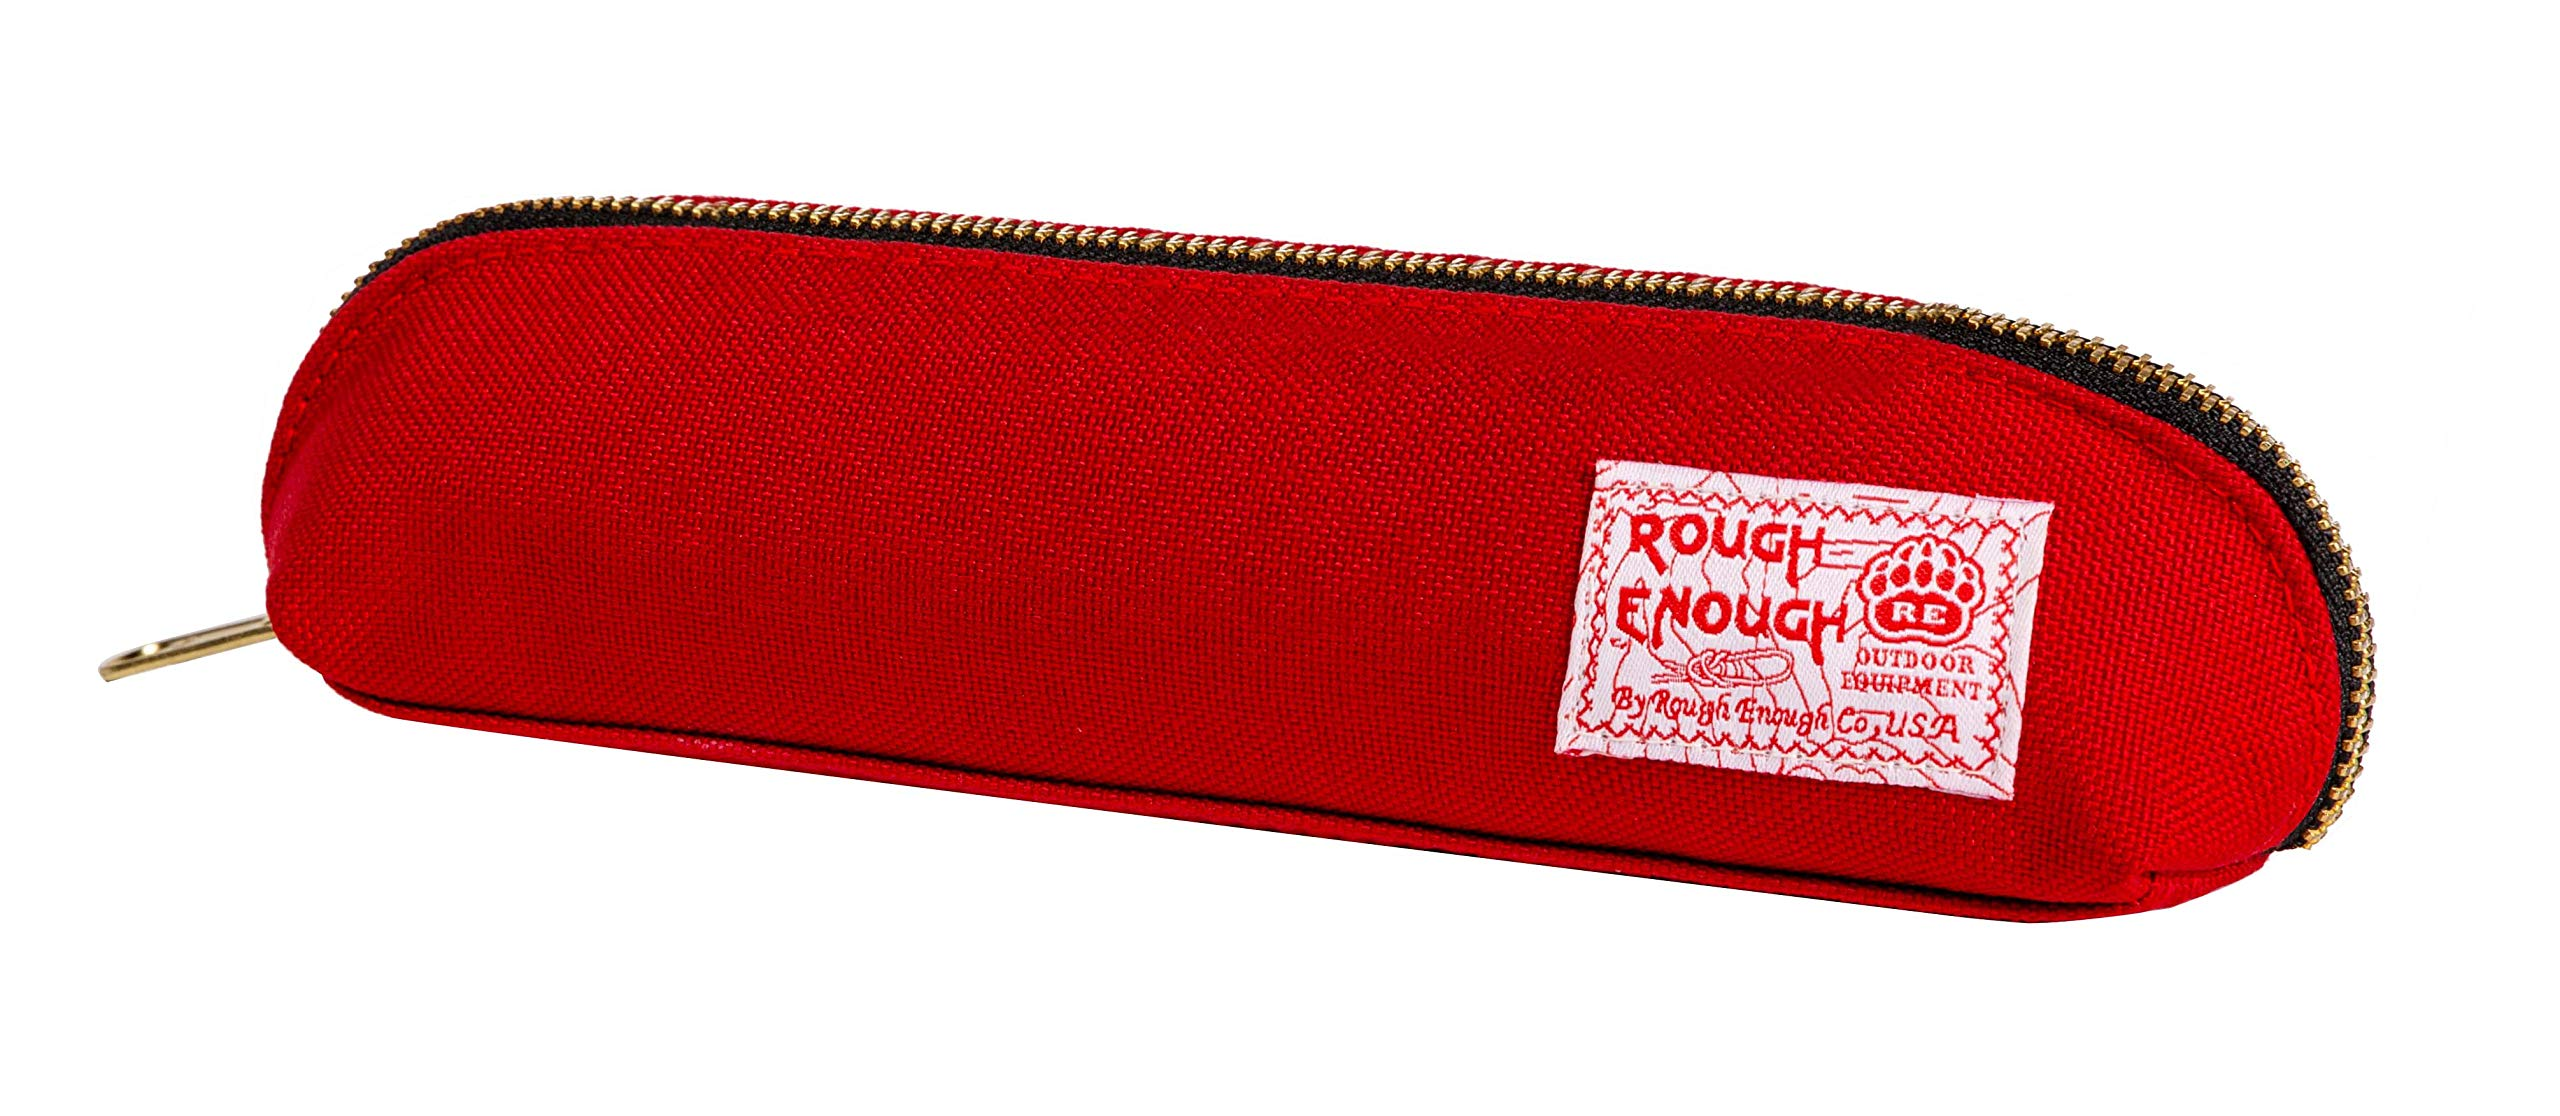 Rough Enough Cute Red Long Slim Pencil Case for Boys Girls Art Supplies Cool Zipper Organizer Colored Pouch Adults Case with Zipper for Teacher Accessories Travel College School Stationary